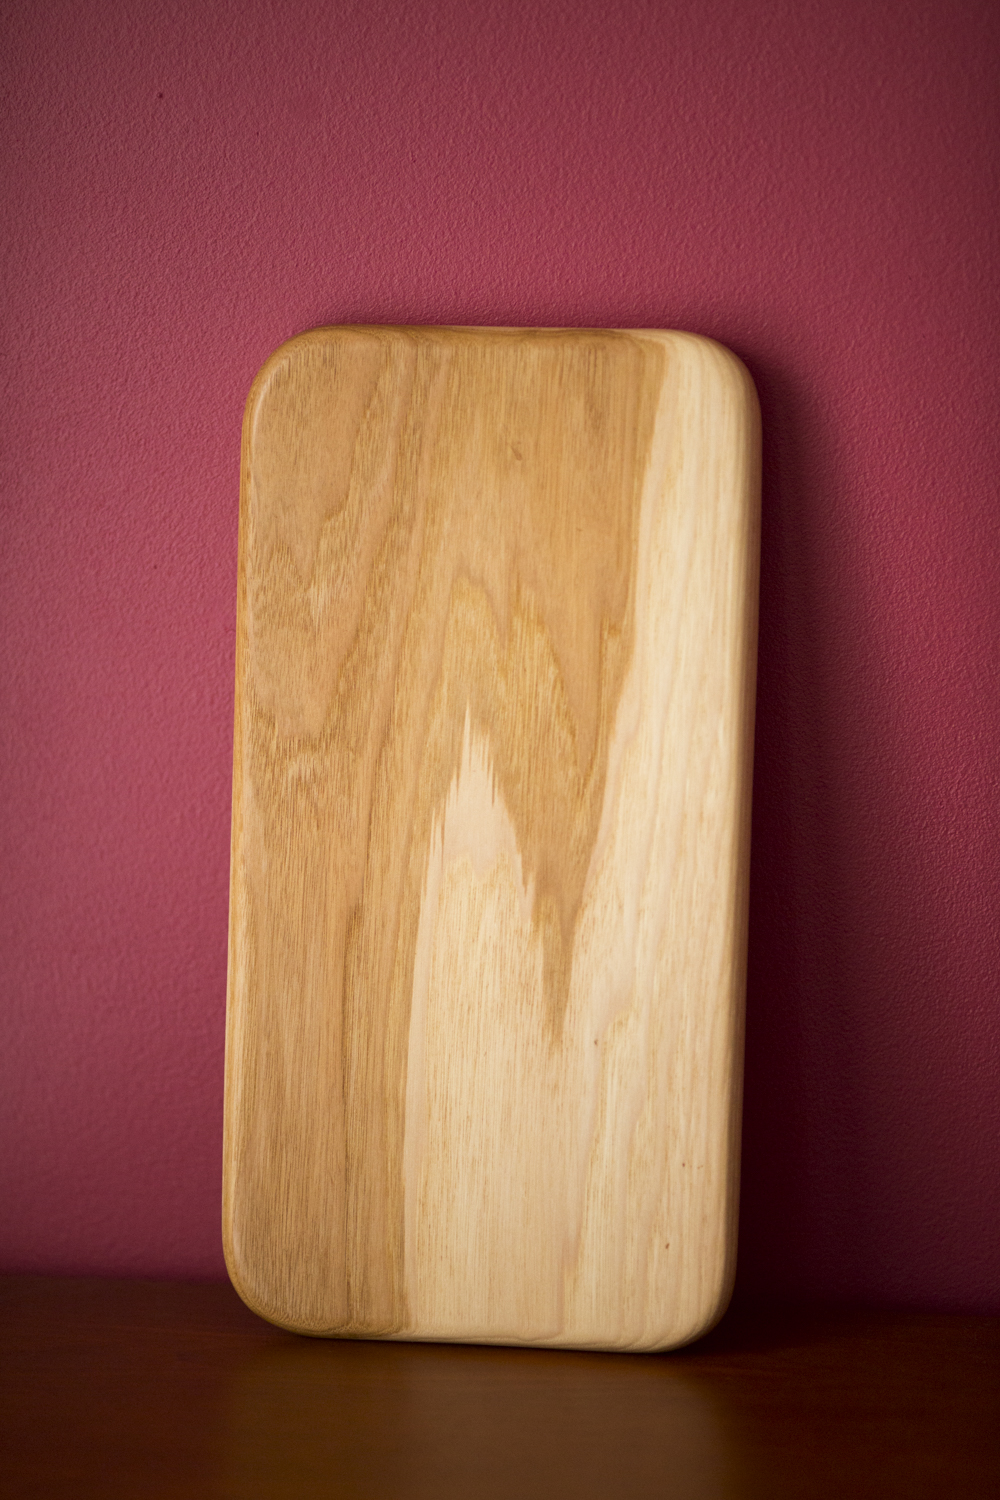 Serving board, yellow birch